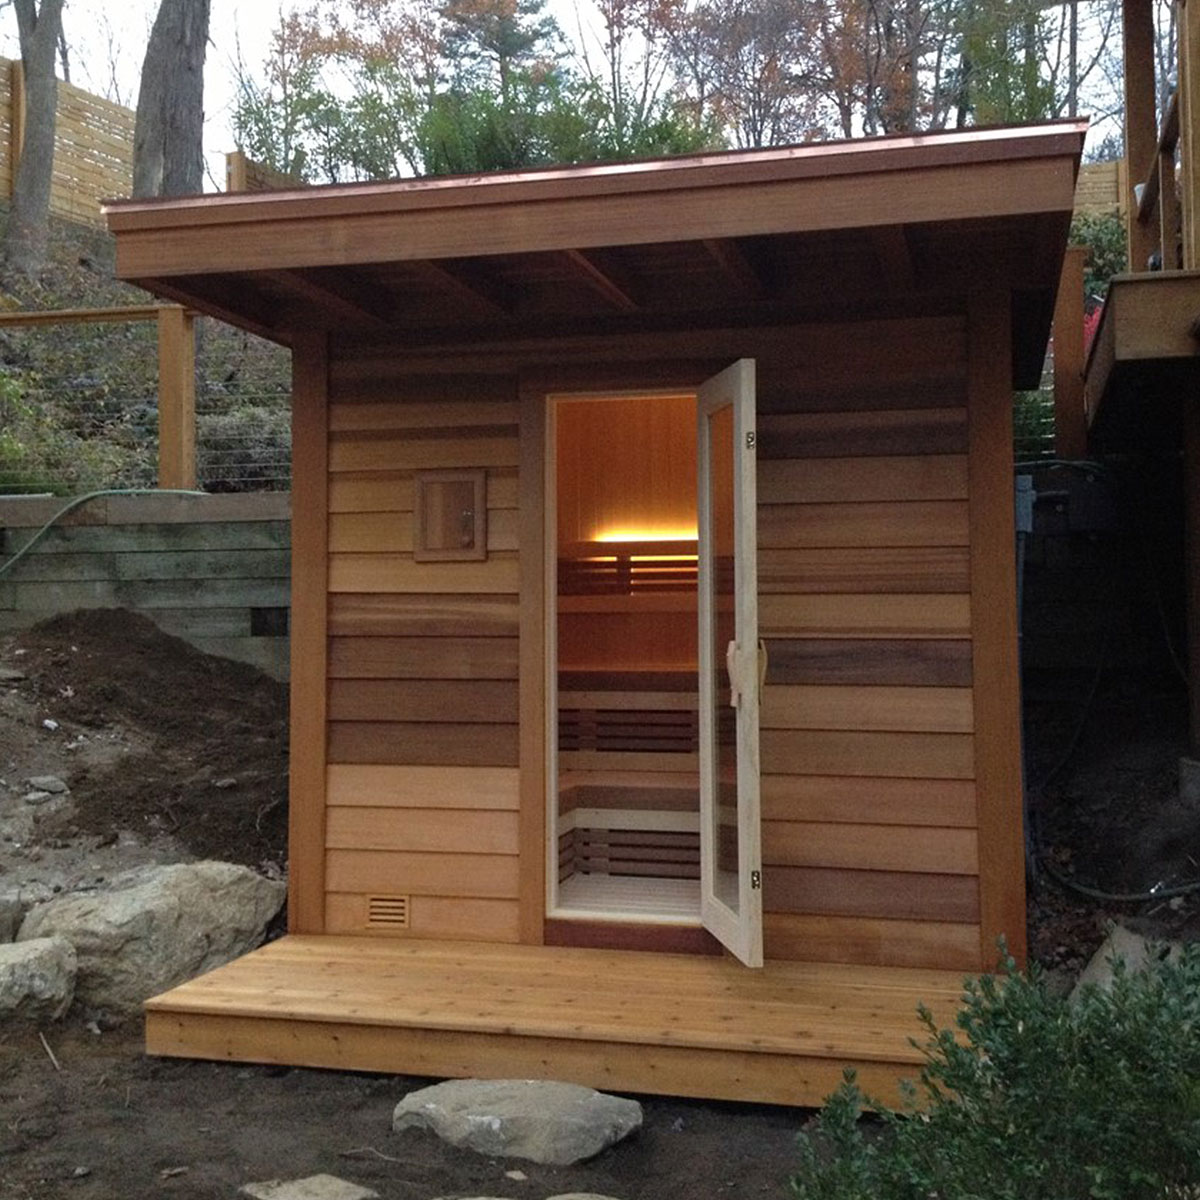 seattle outdoor sauna design store sales olympic hot tub. Black Bedroom Furniture Sets. Home Design Ideas